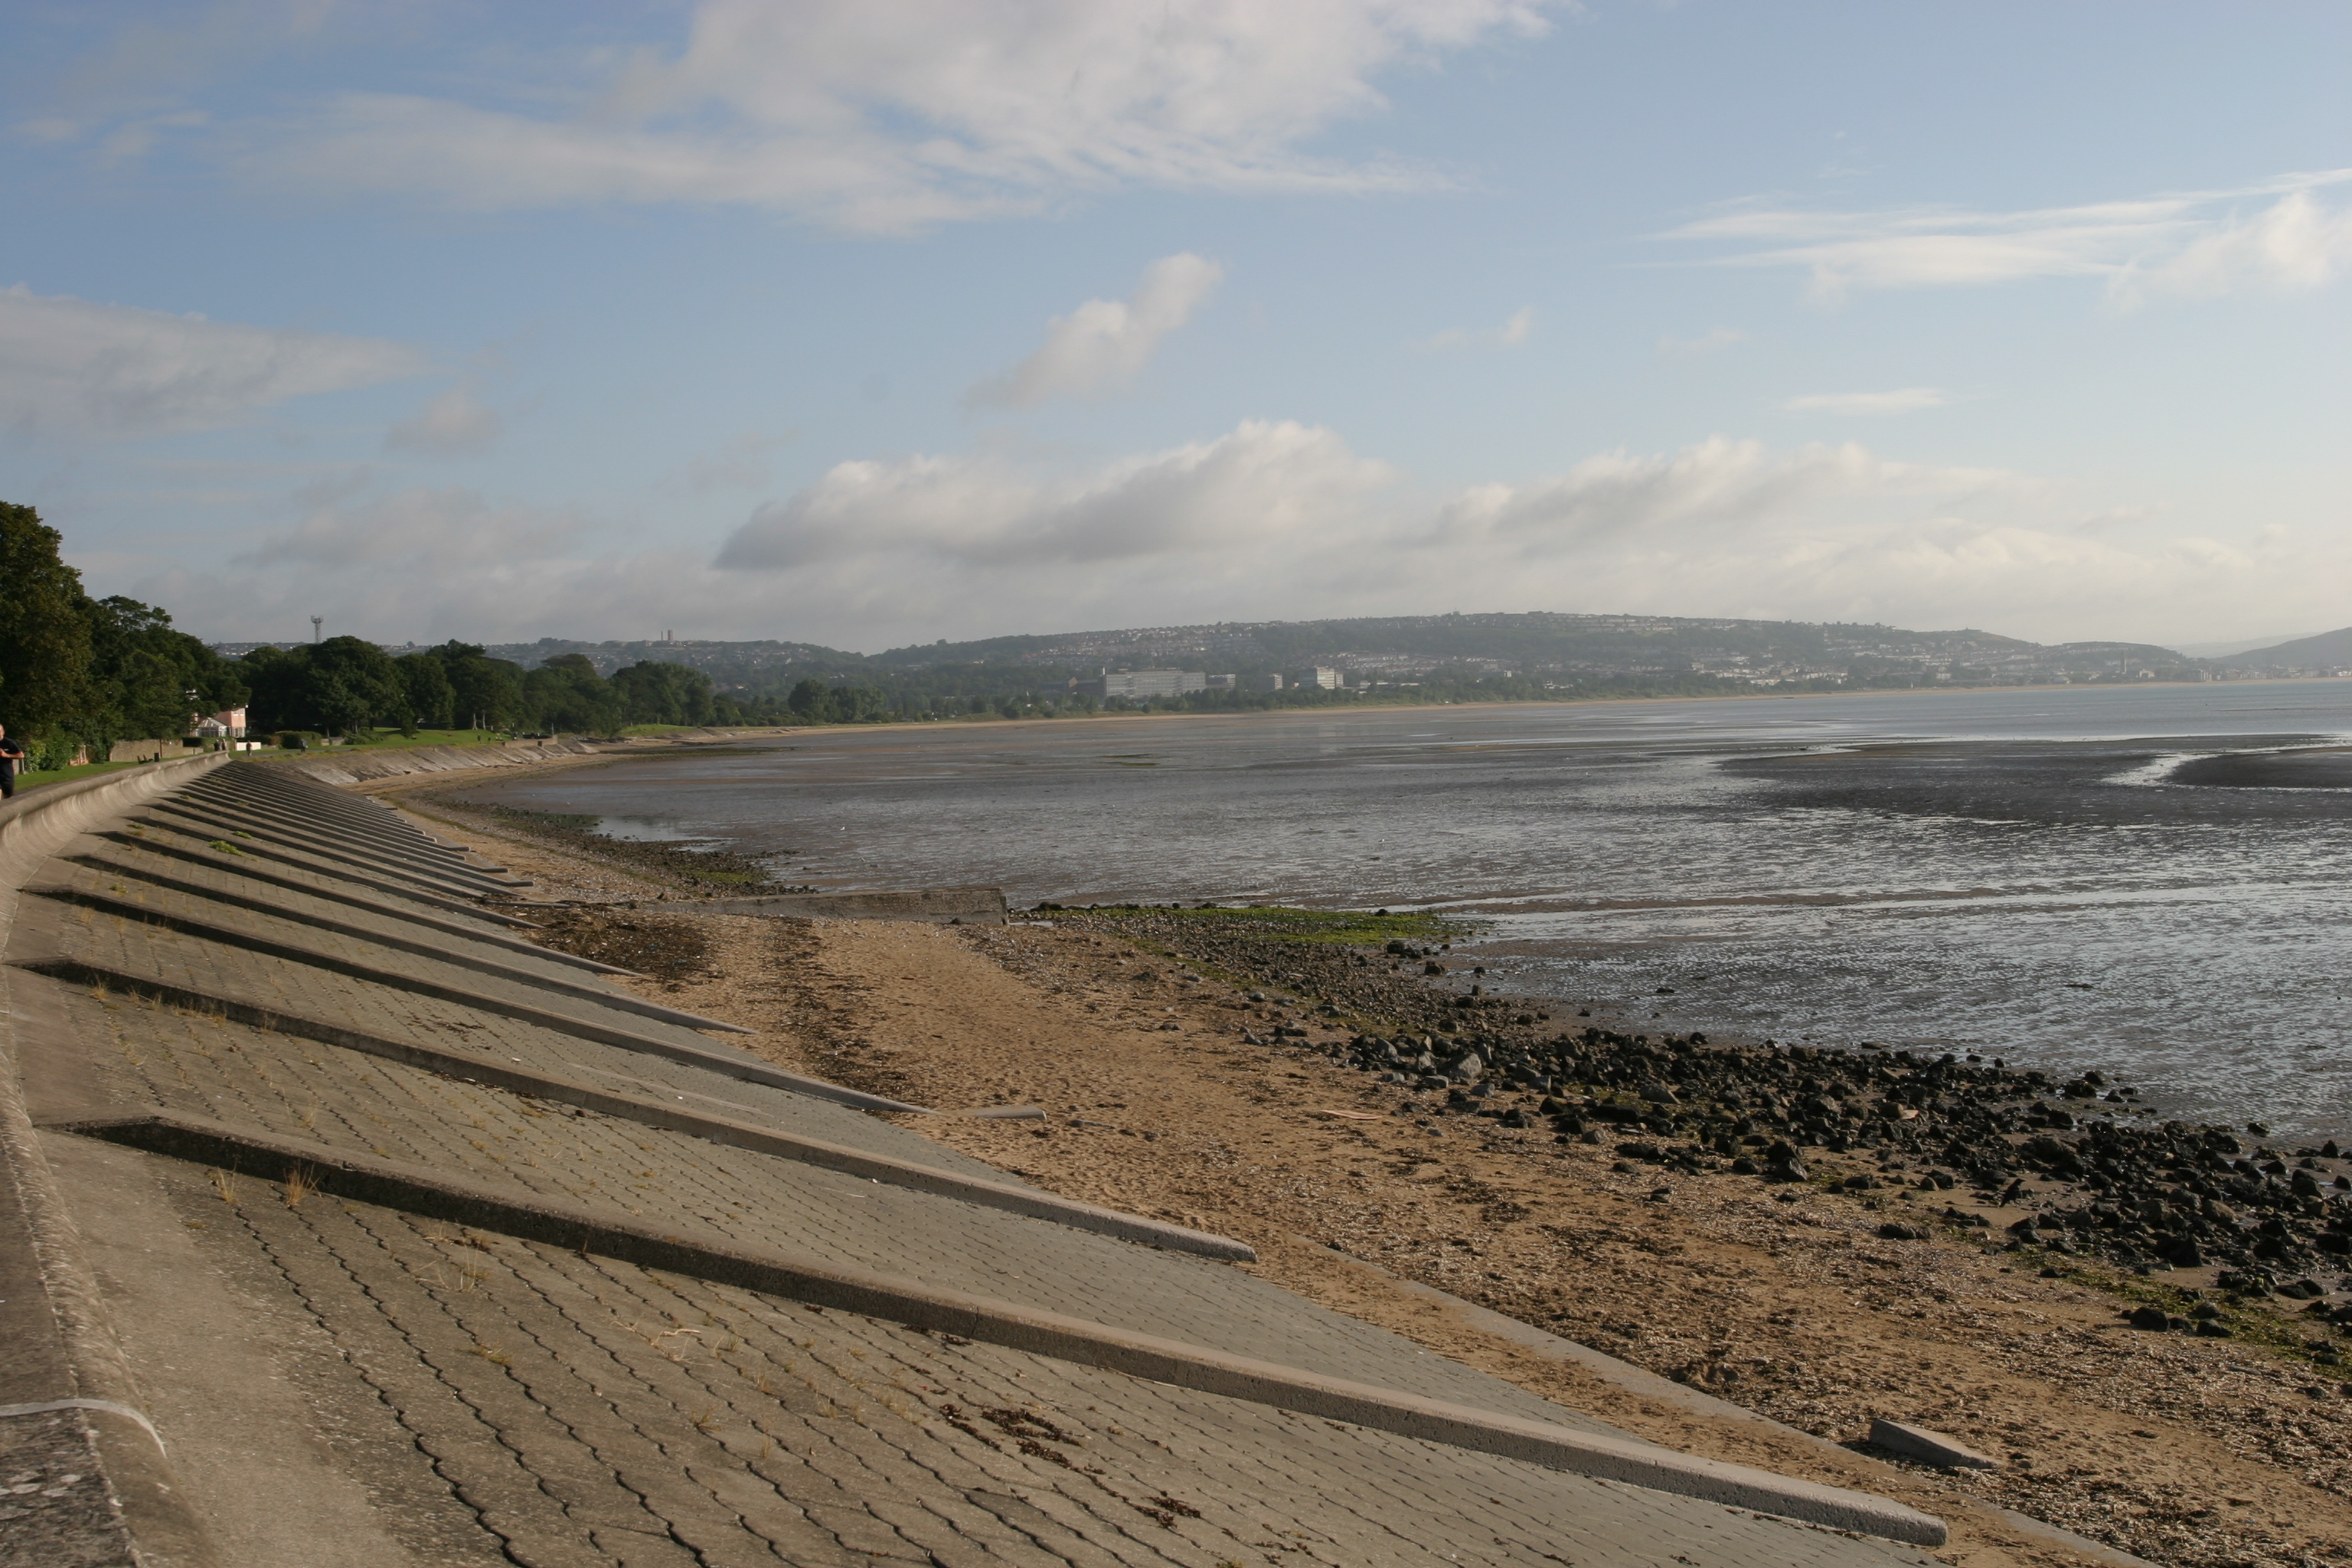 The beach, looking towards Swansea city center